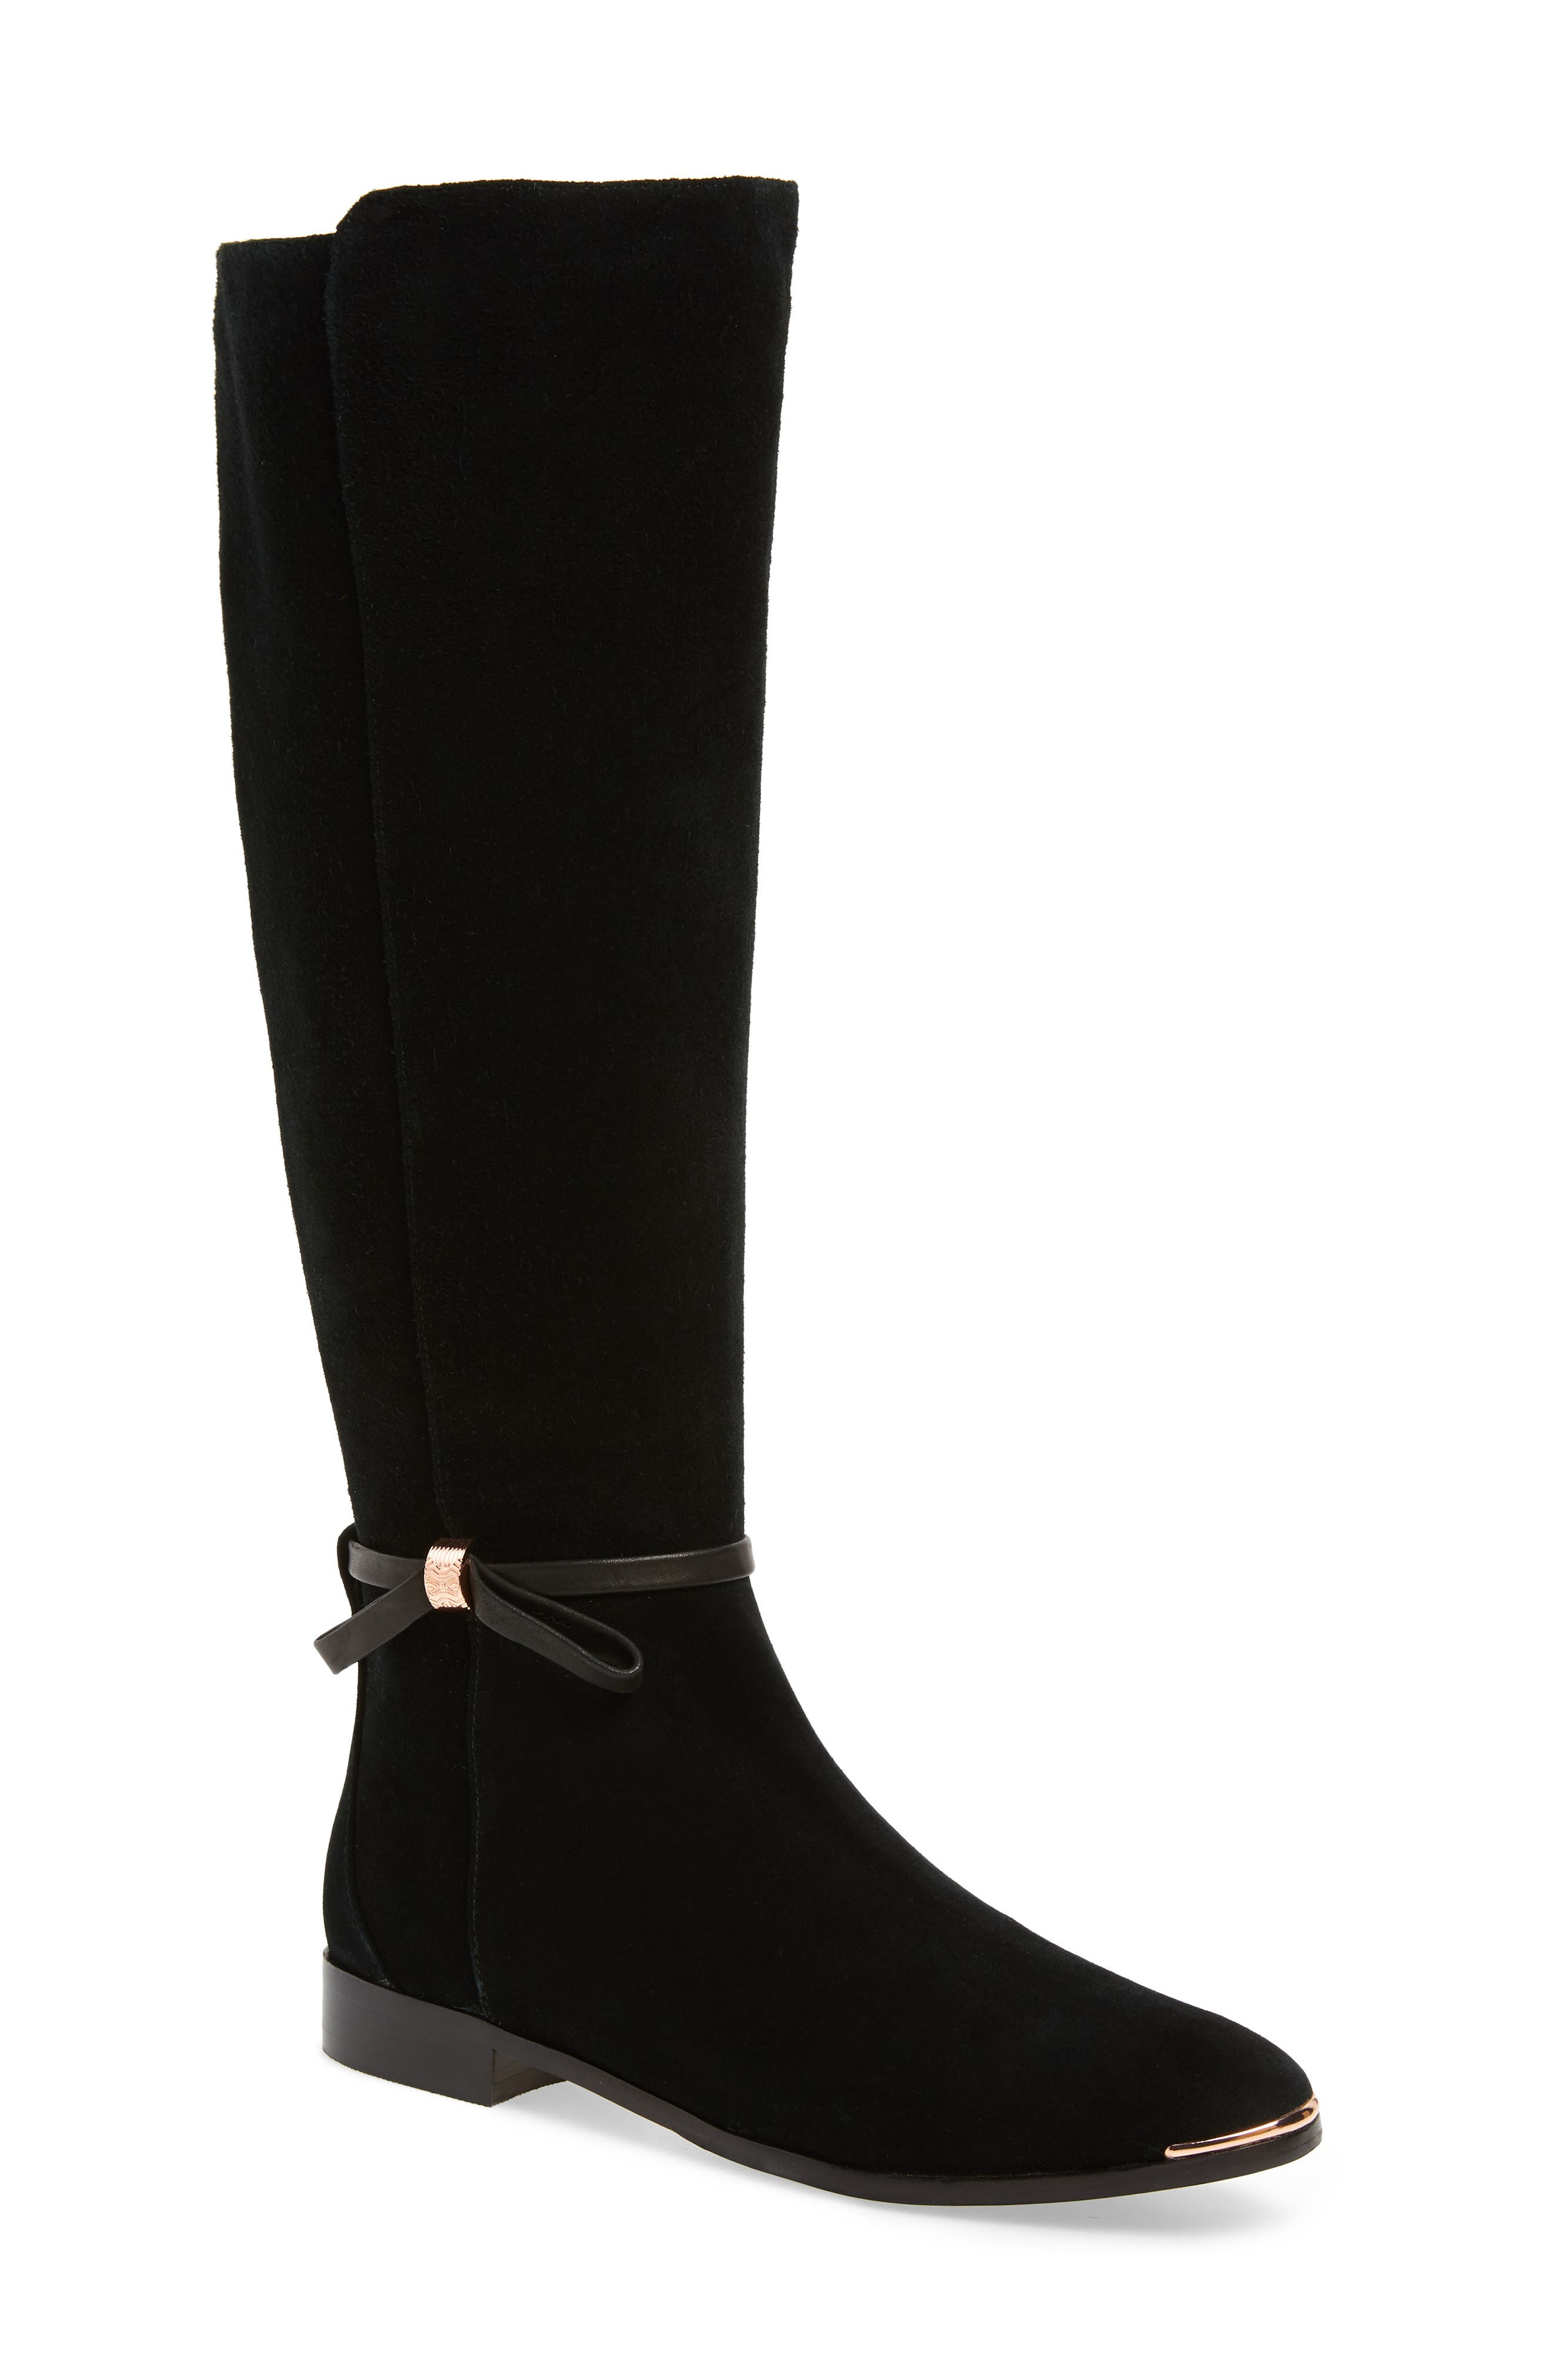 TED BAKER LONDON Lykla Knee High Boot, Main, color, BLACK SUEDE